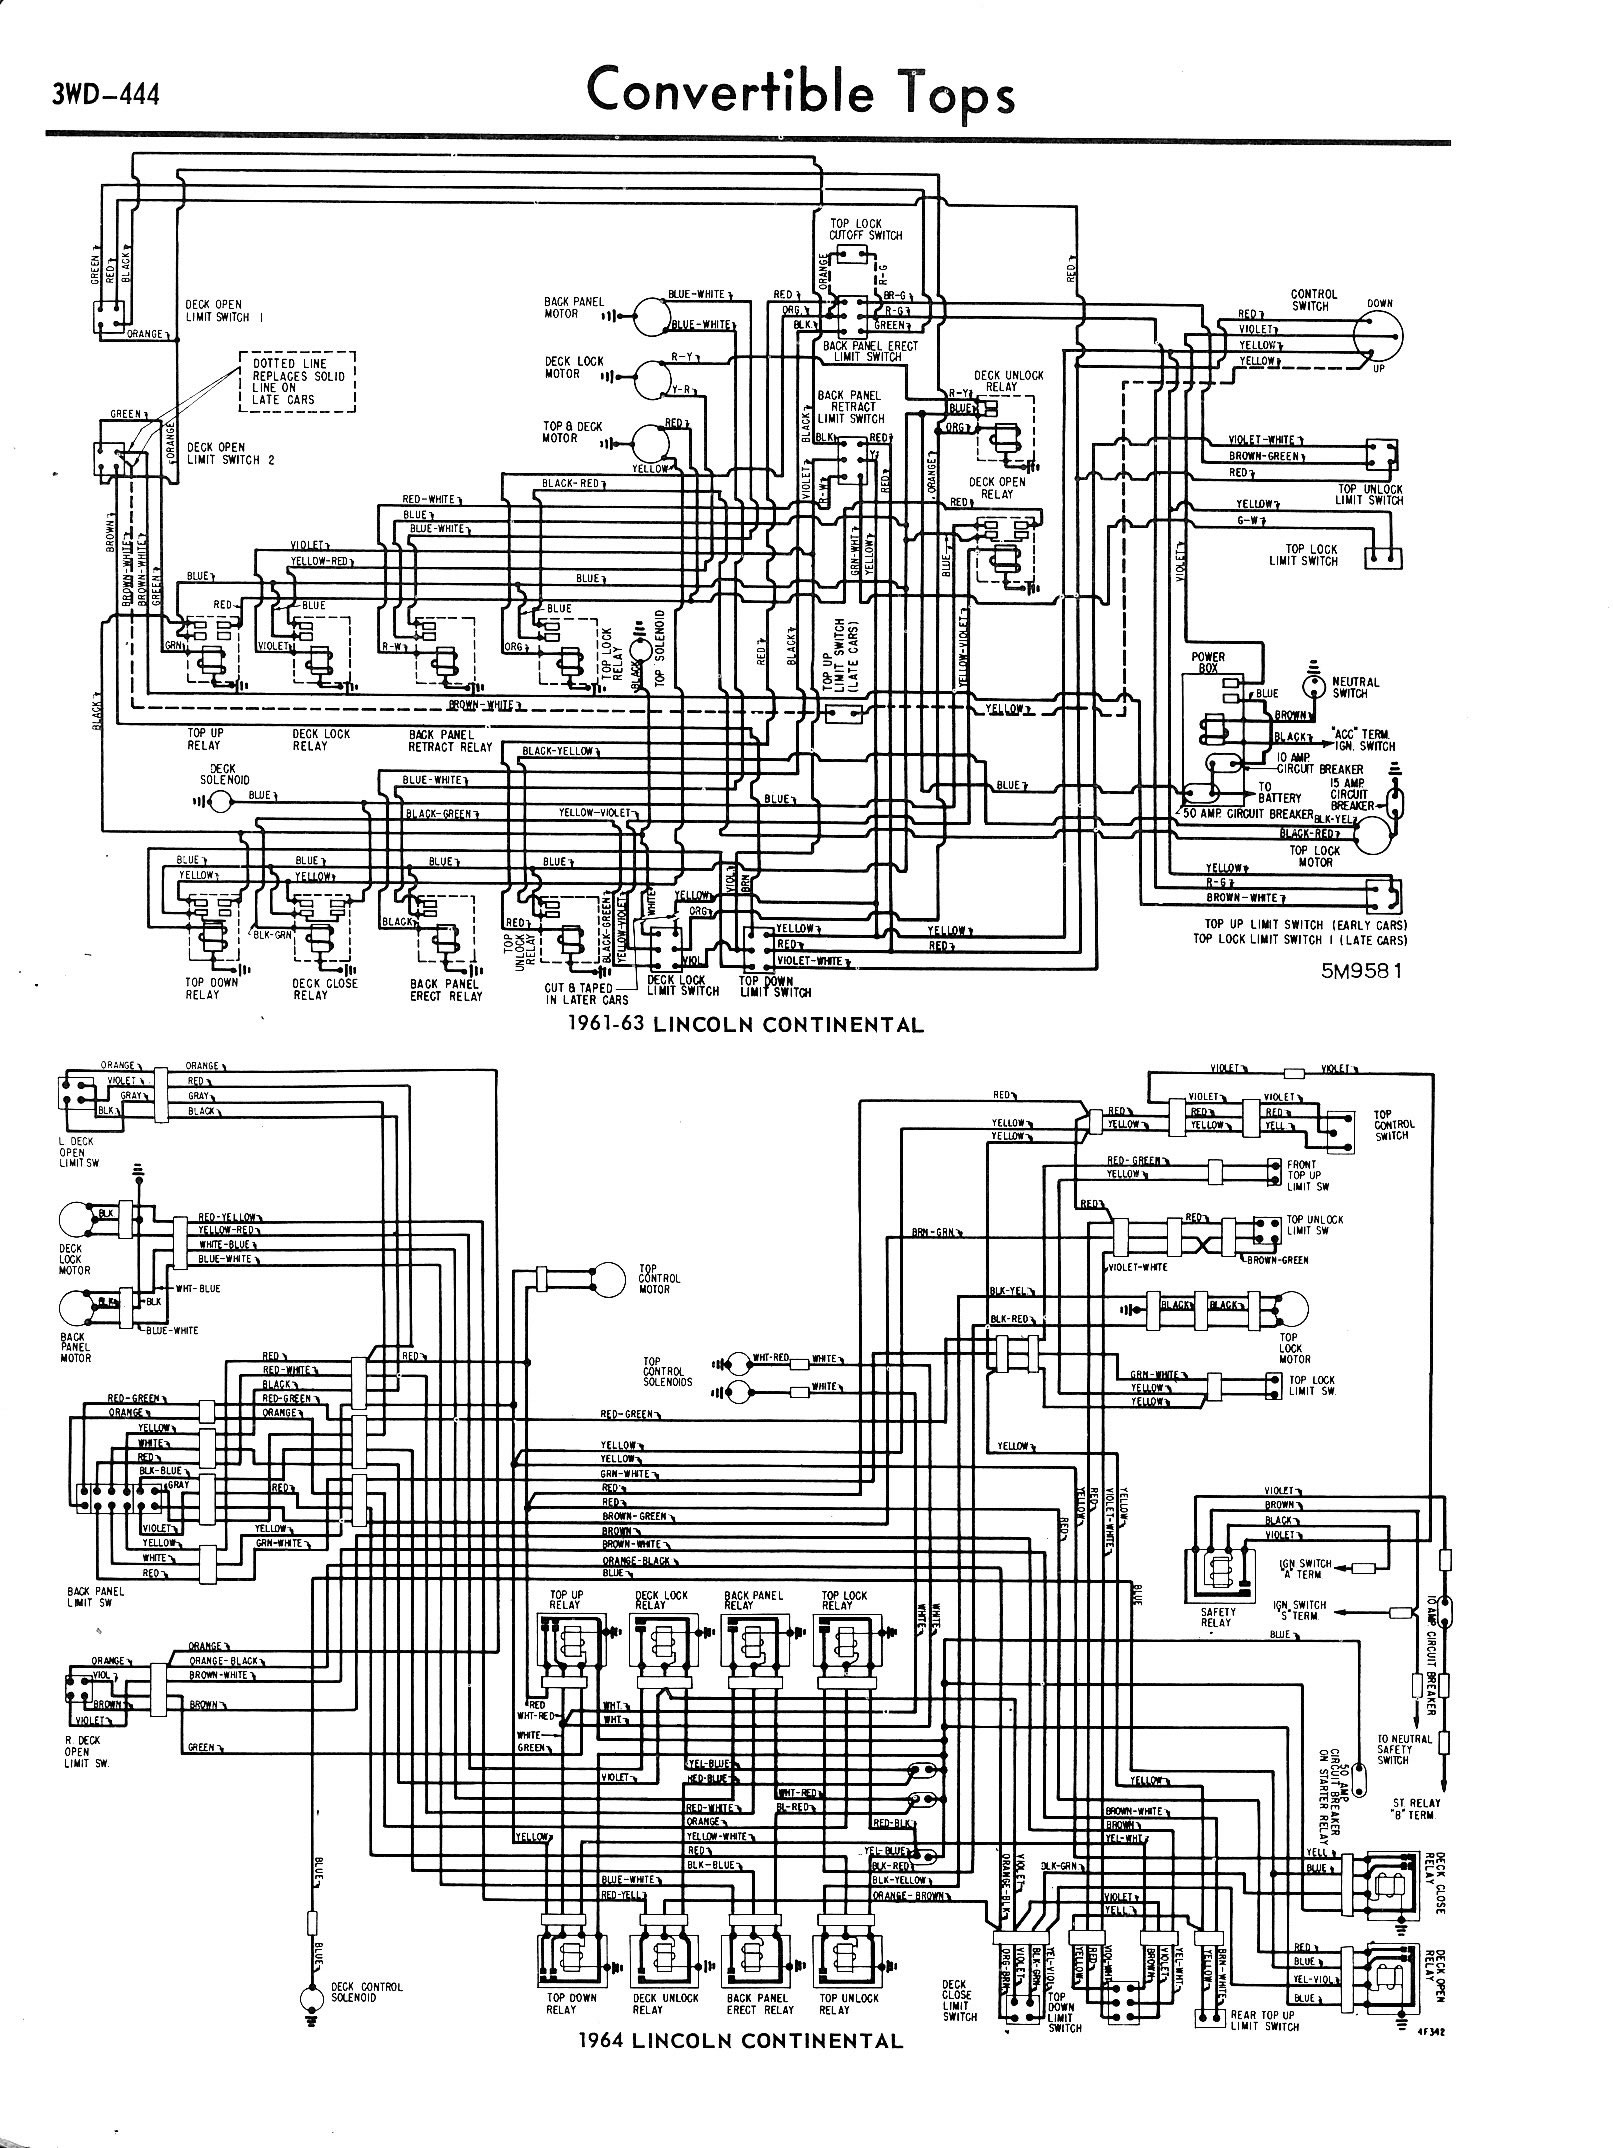 63 Corvette Voltage Regulator Wiring Diagram Data Schema Thunderbird Simple Alternator